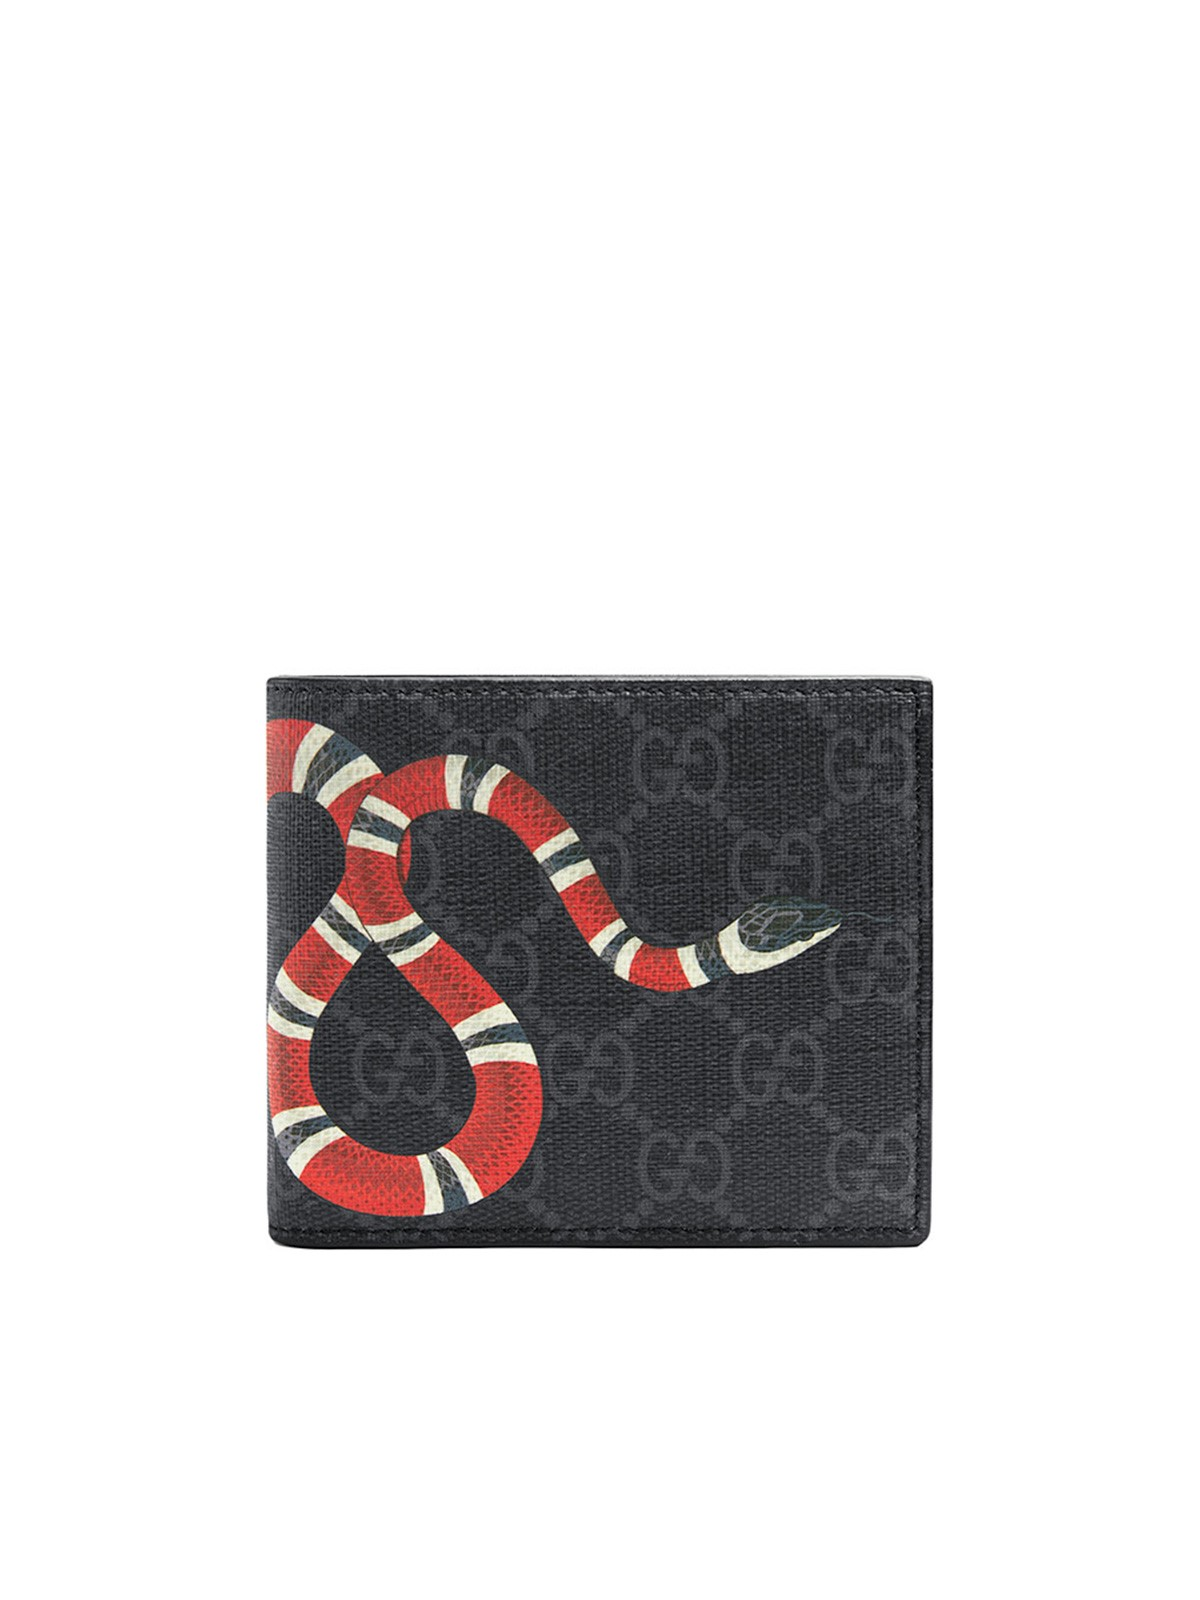 daad1373c16 gucci KINGSNAKE PRINT WALLET available on montiboutique.com - 22751